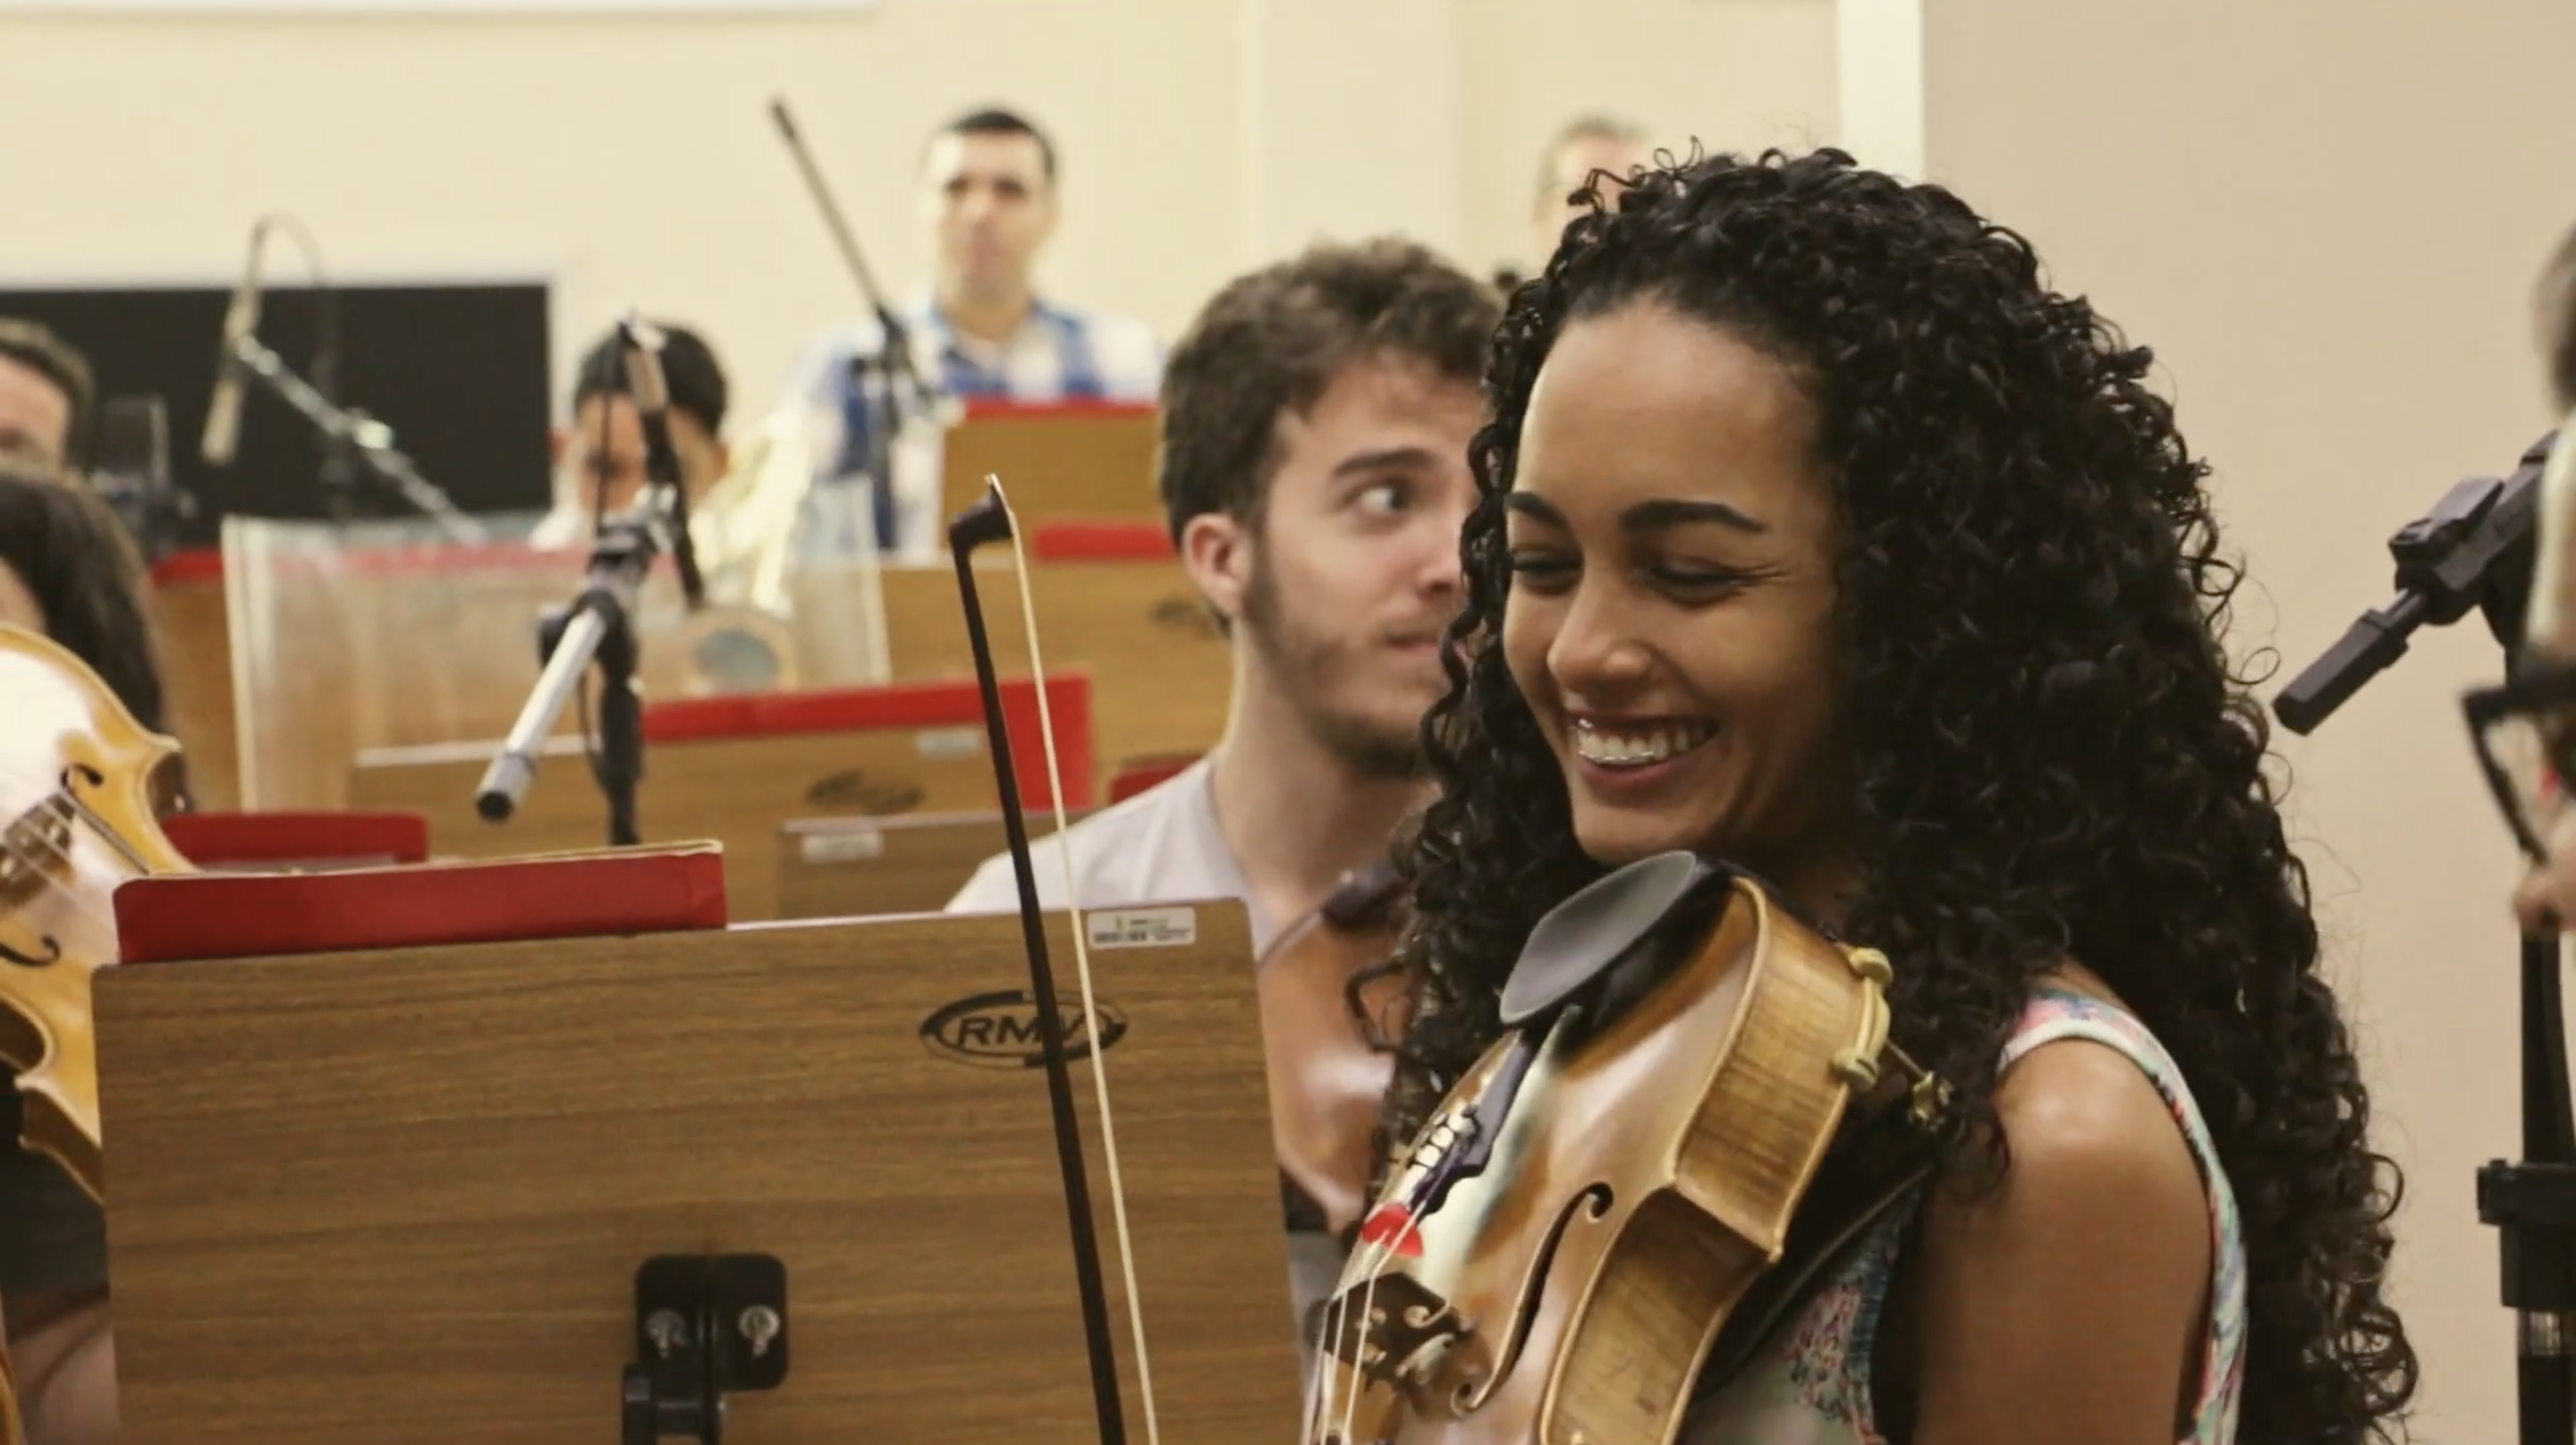 A young woman happily plays in an orchestra